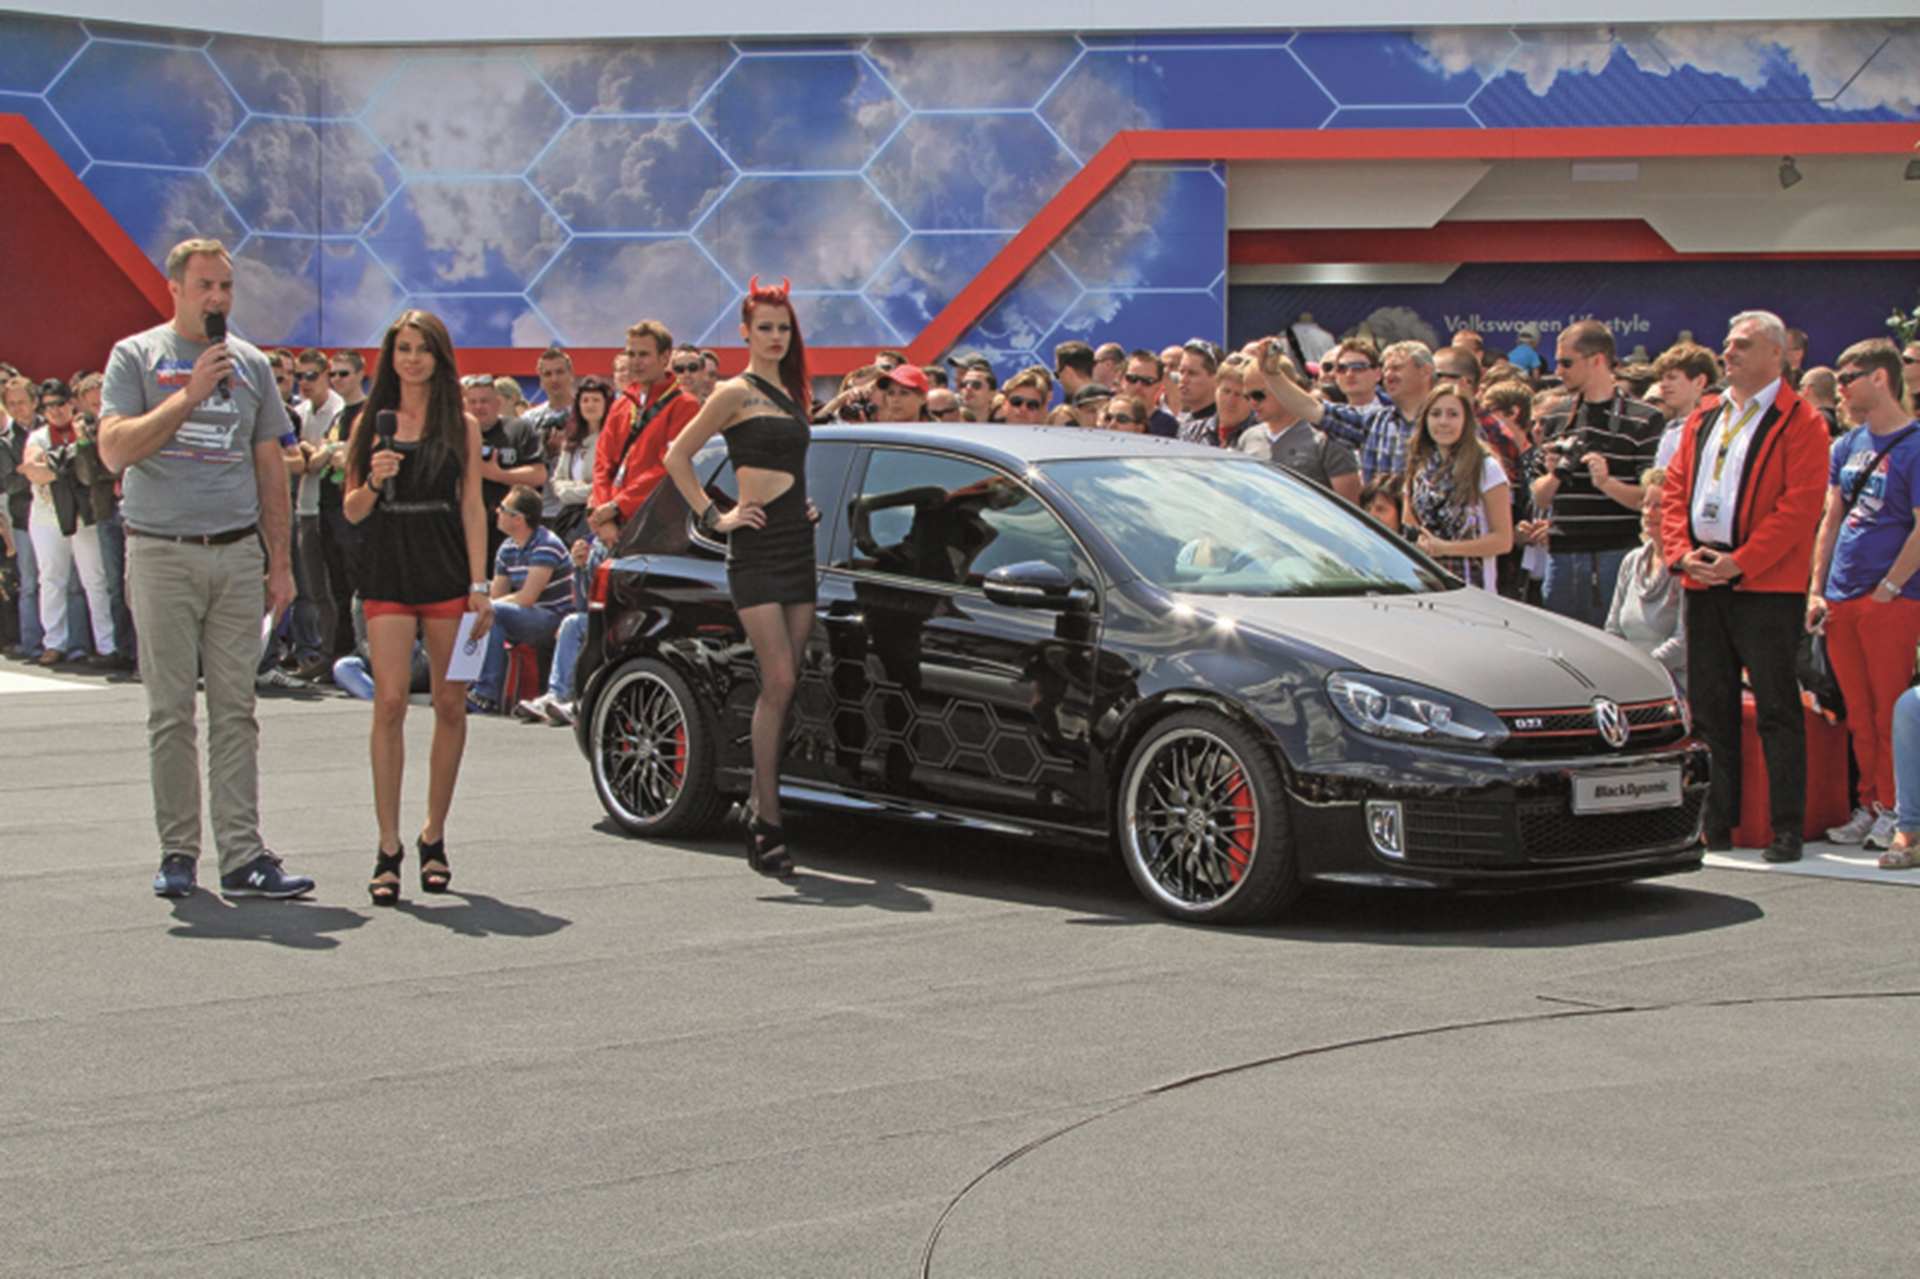 Volkswagen Black Golf